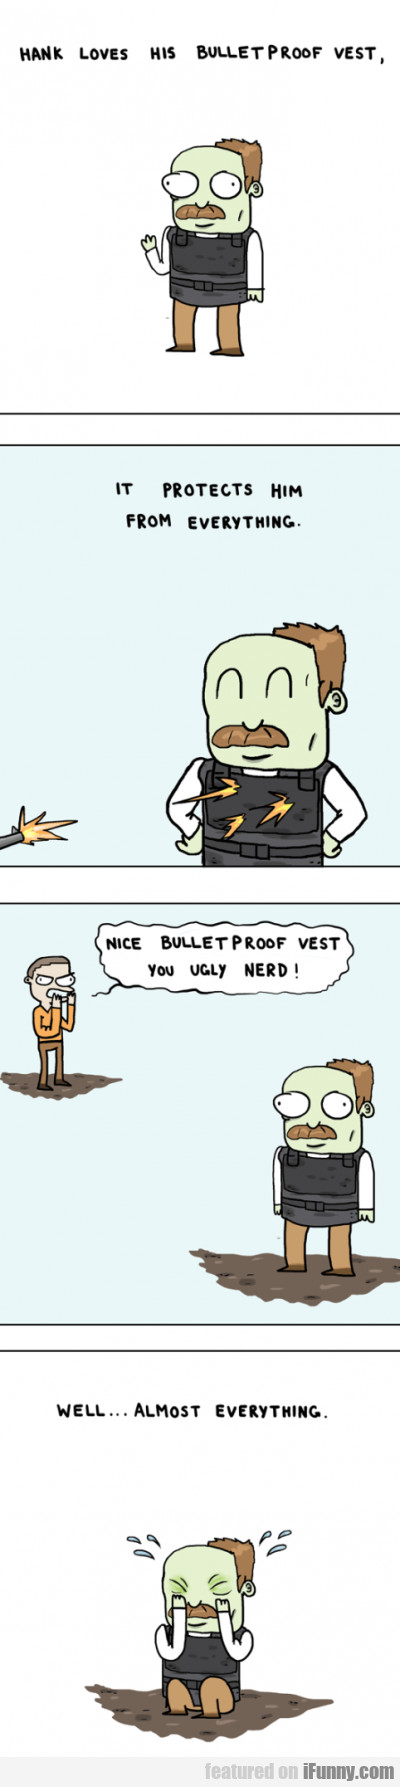 Hank Loves His Bulletproof Vest